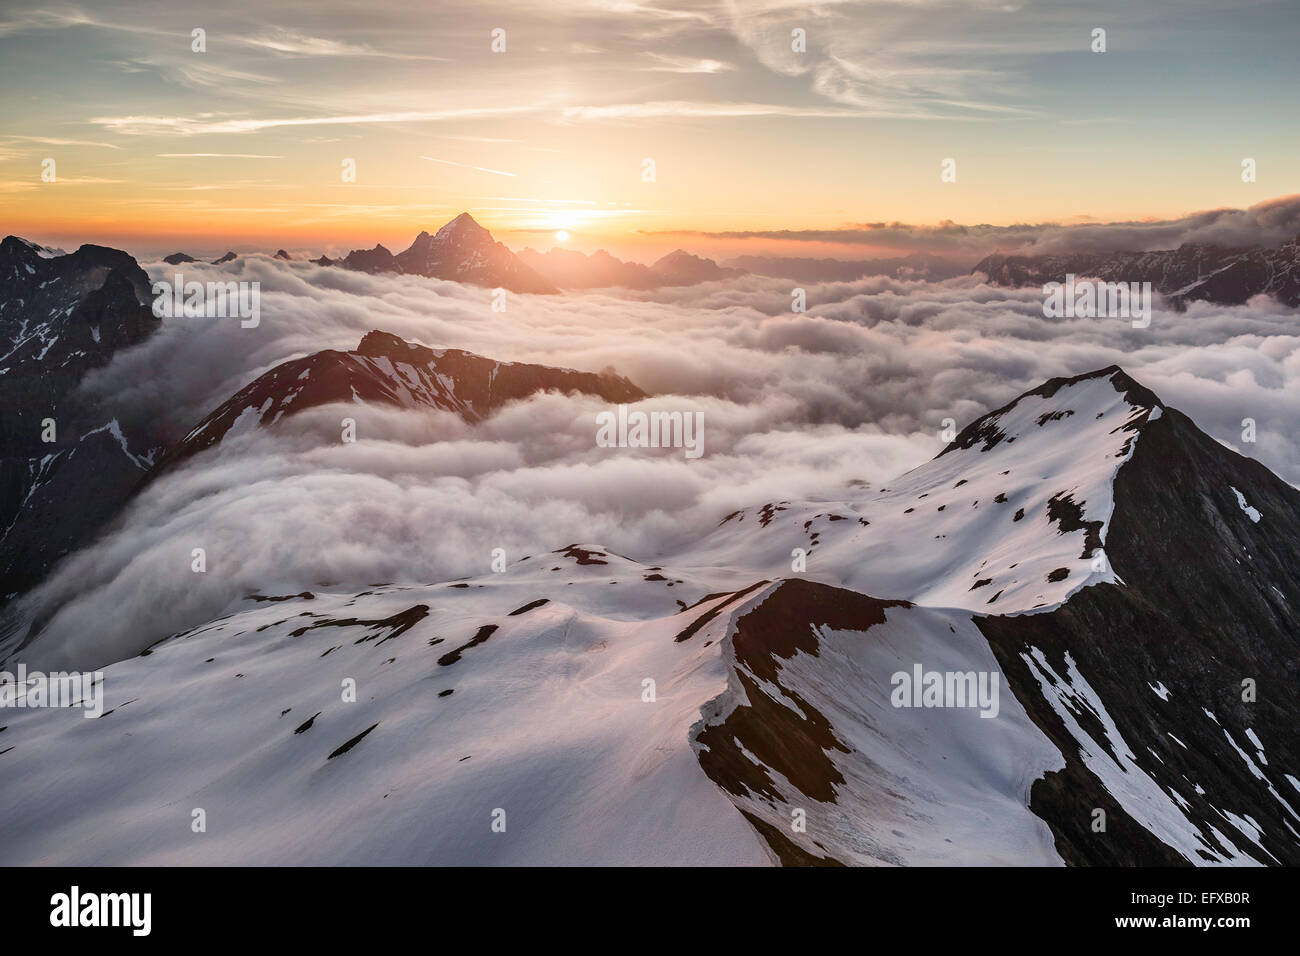 View of Bavarian Alps as sun rises above the clouds, Oberstdorf, Bavaria, Germany - Stock Image